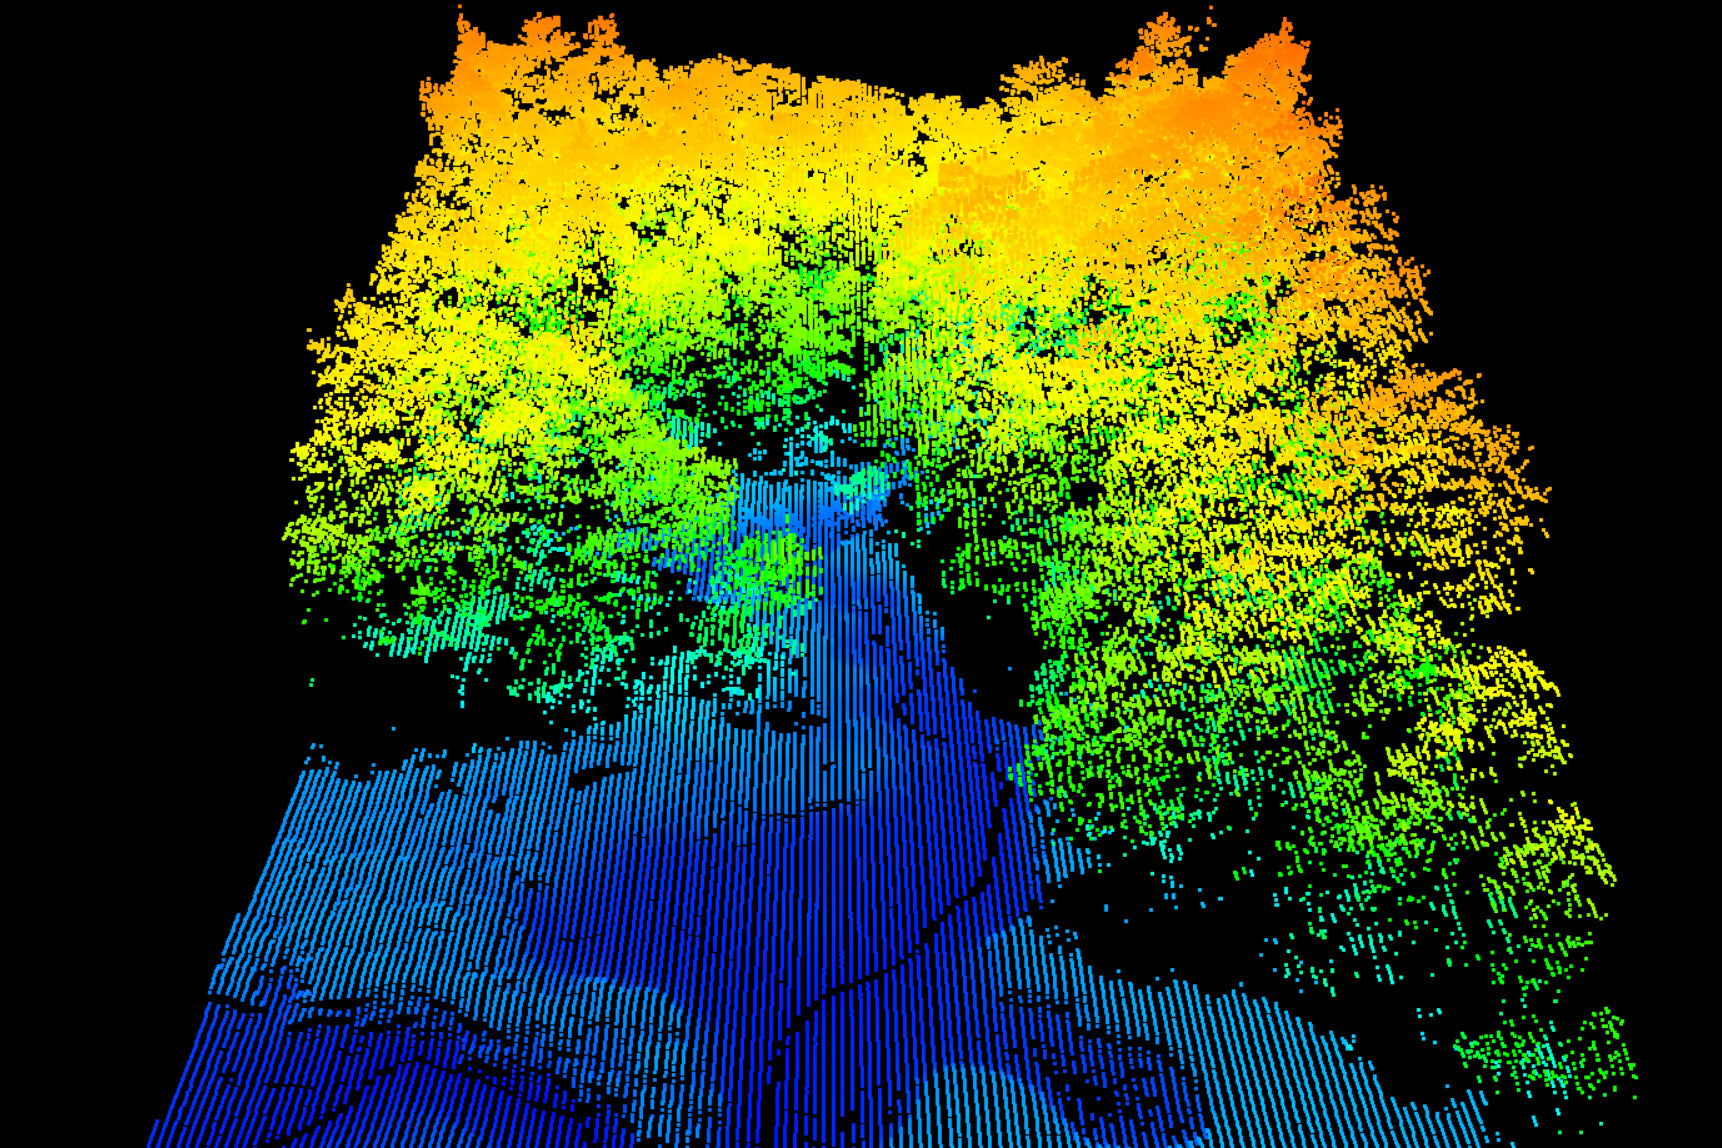 Pachama uses LIDAR technology to calculate biomass density in forests.